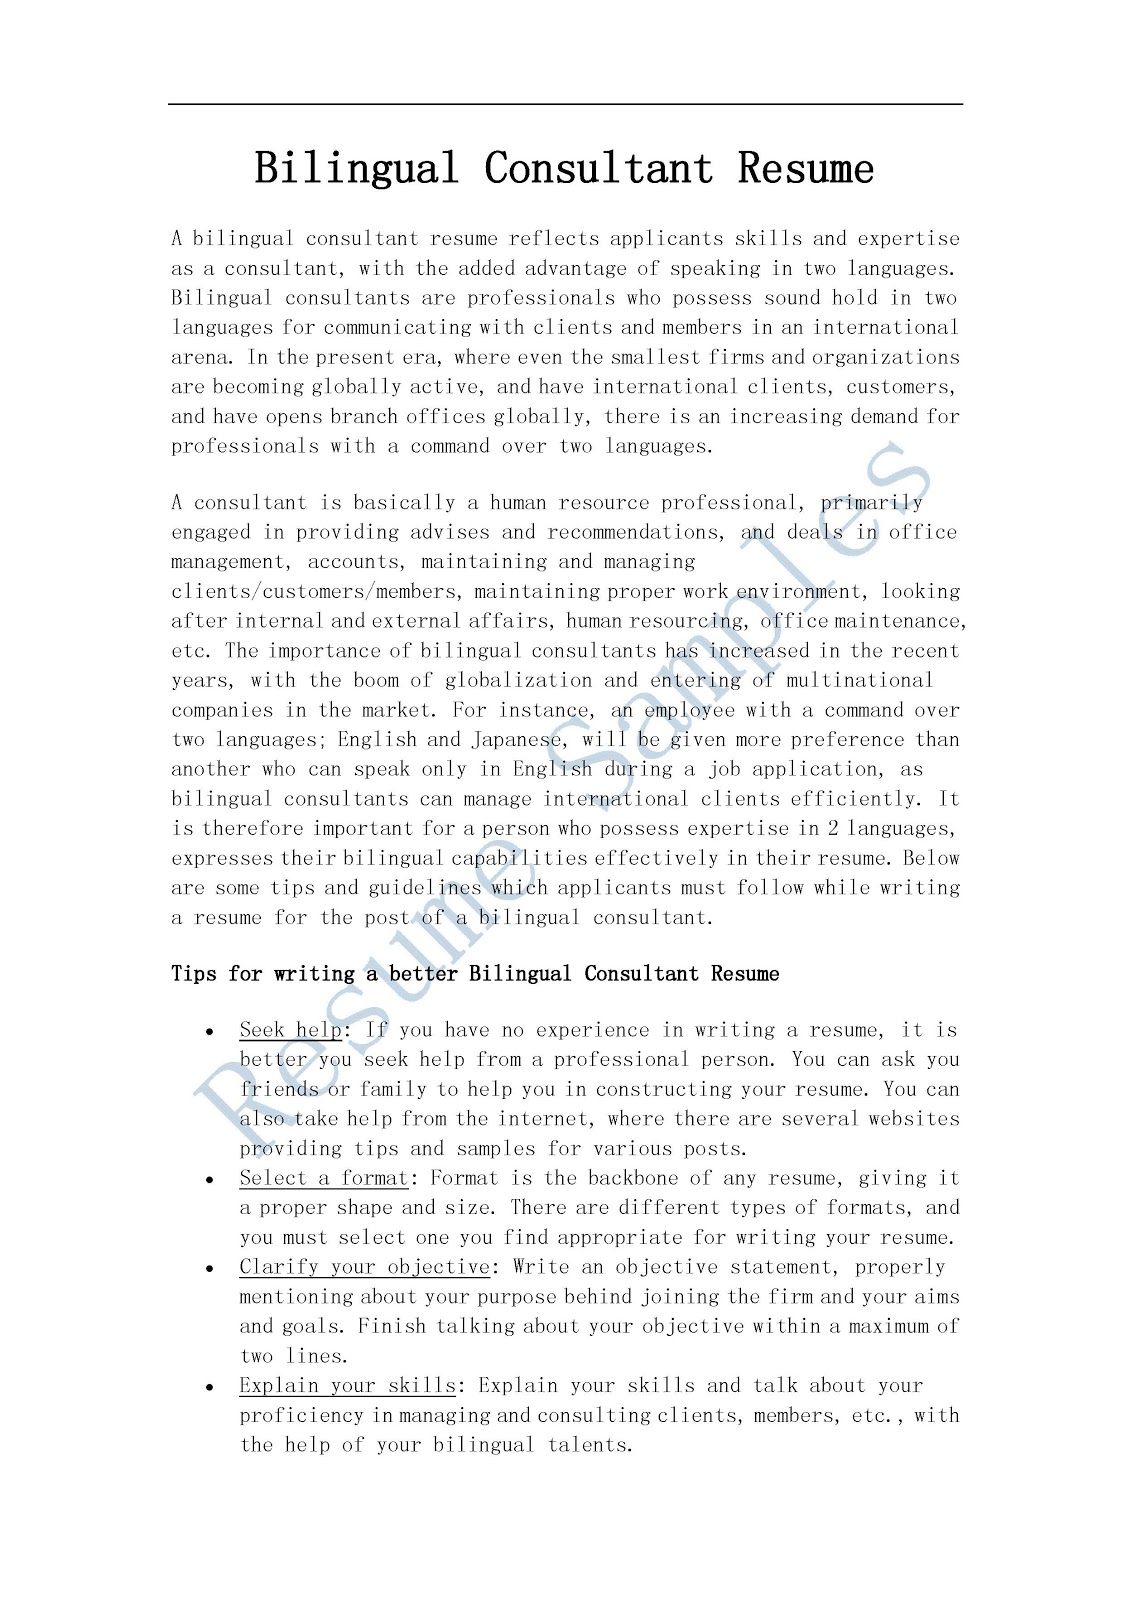 bilingual resume examples bilingual consultant resume sample bilingual resume examples bilingual skills on resume examples resume